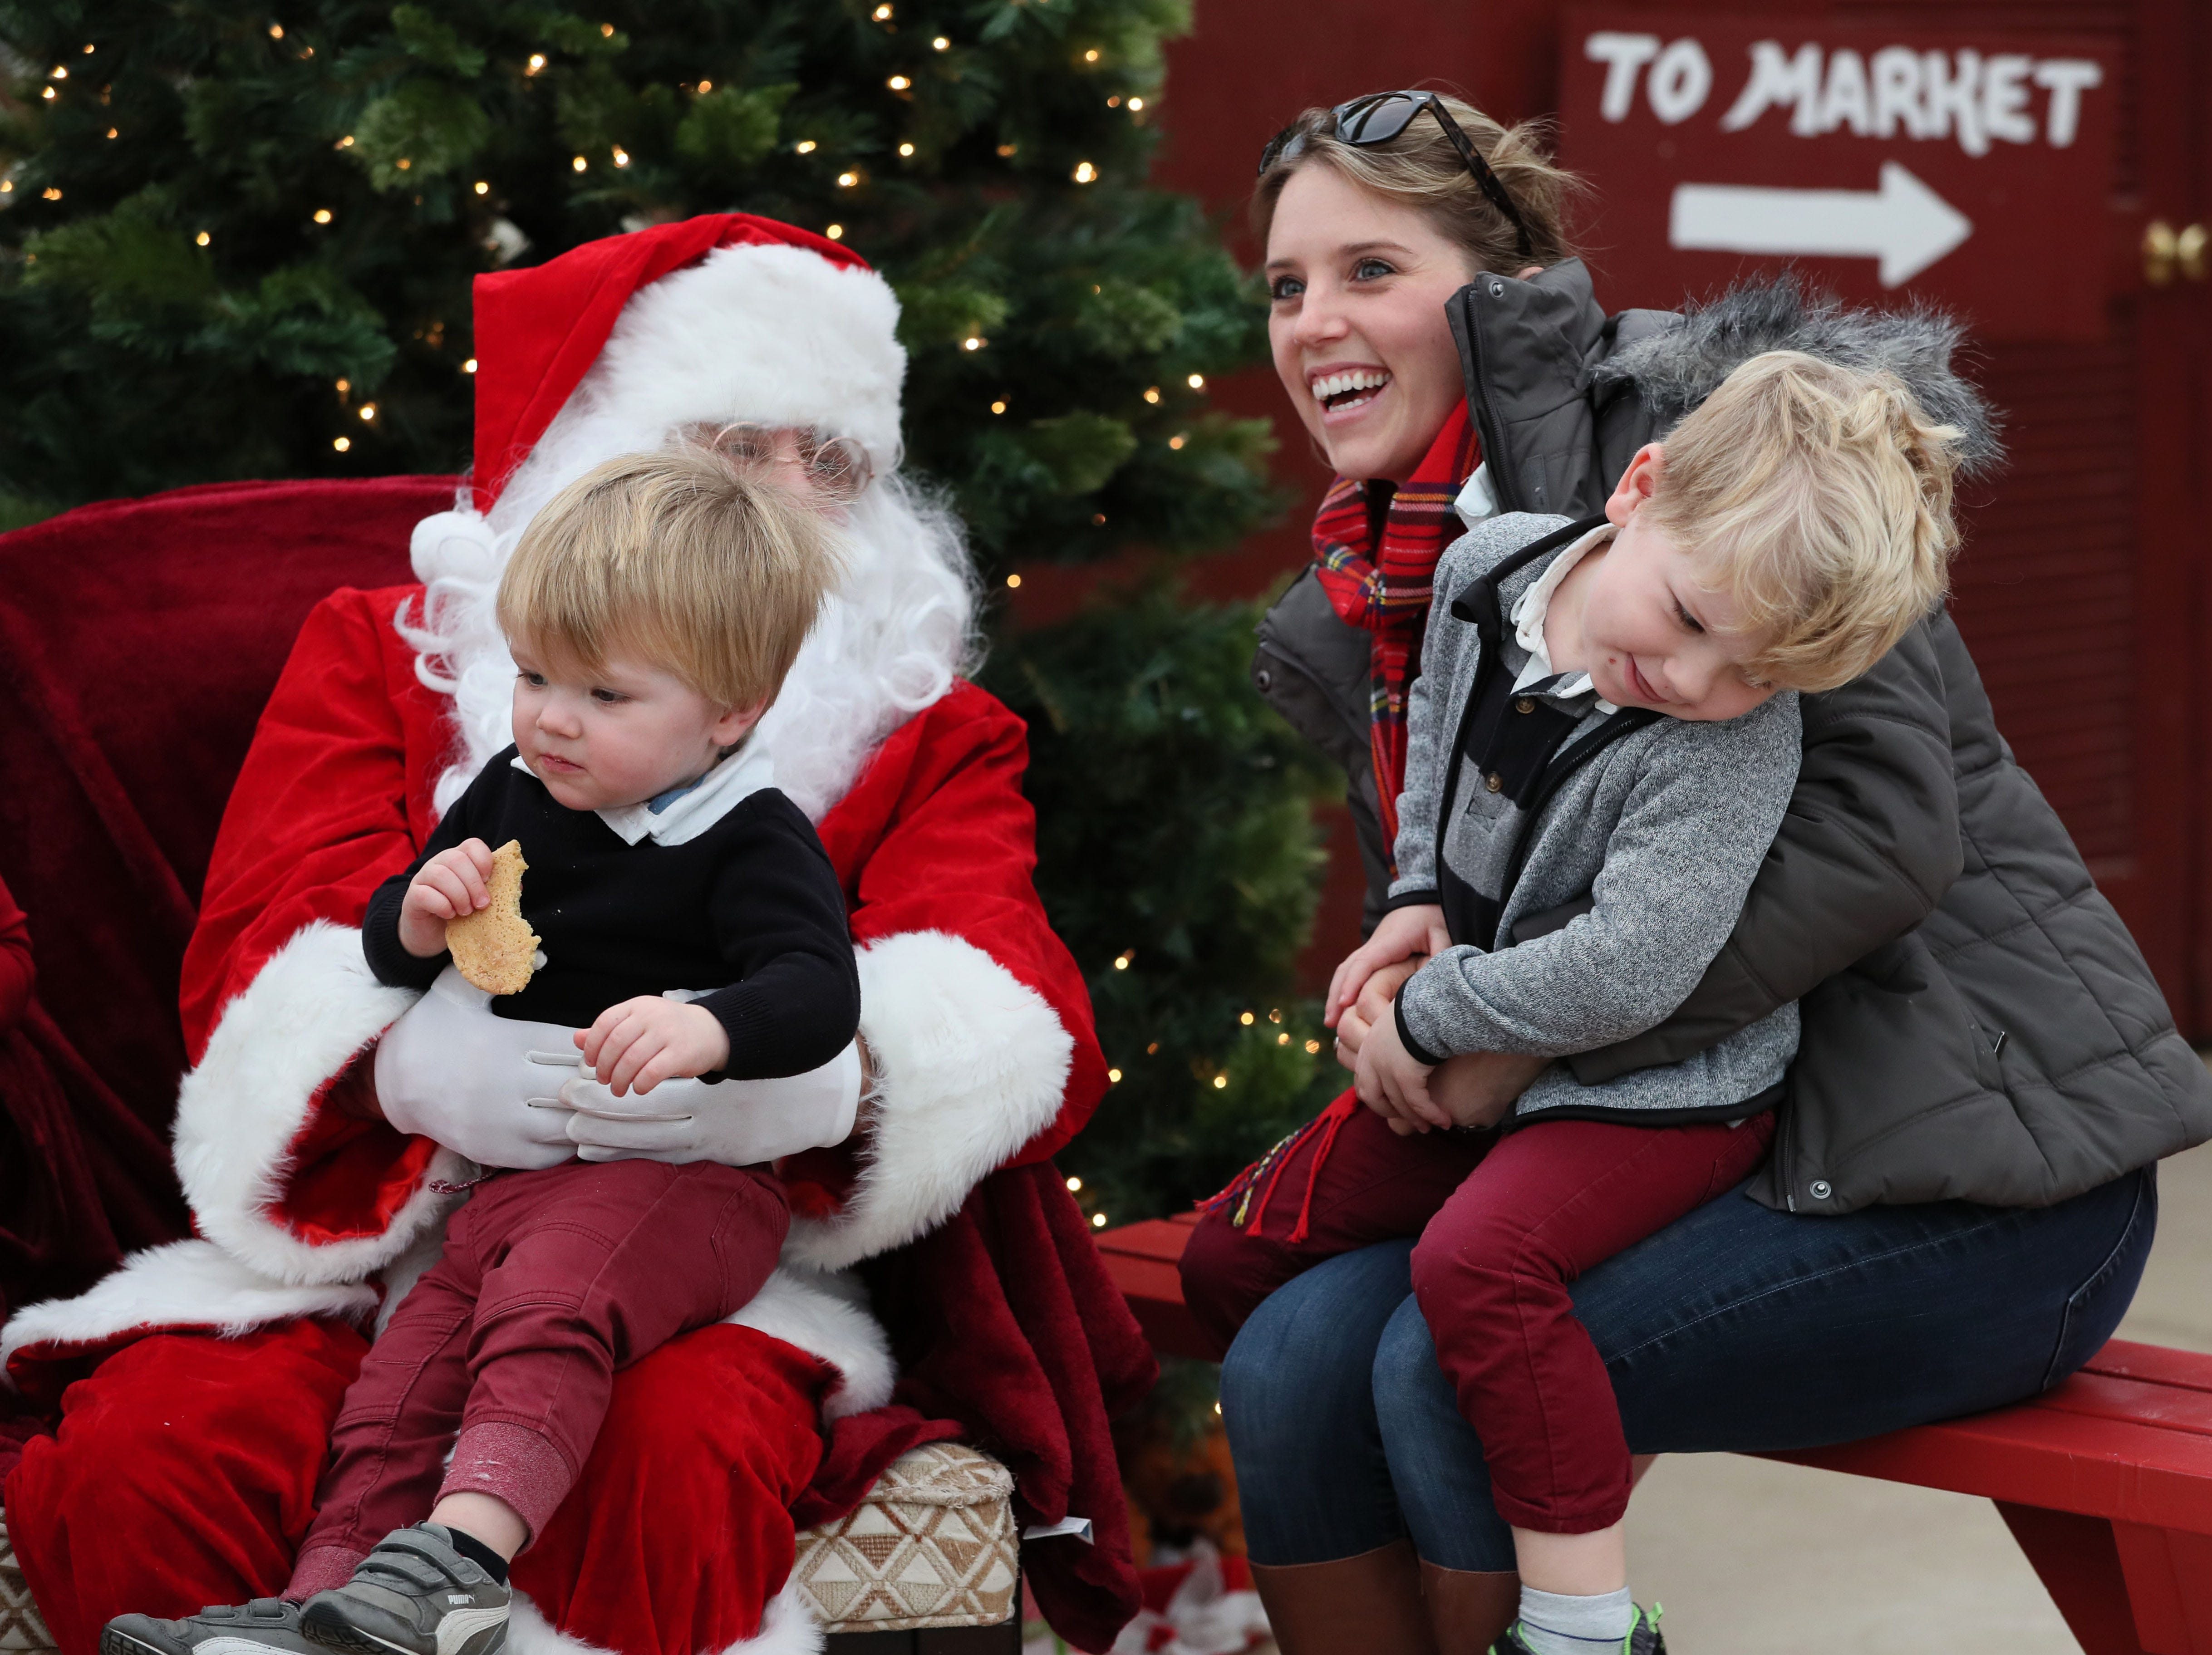 Danielle Wampole of Lake Mills coaxes her children, Emmett (right), 3, and  Graham, 1, into having their picture taken with Santa, aka Blase Catanese.